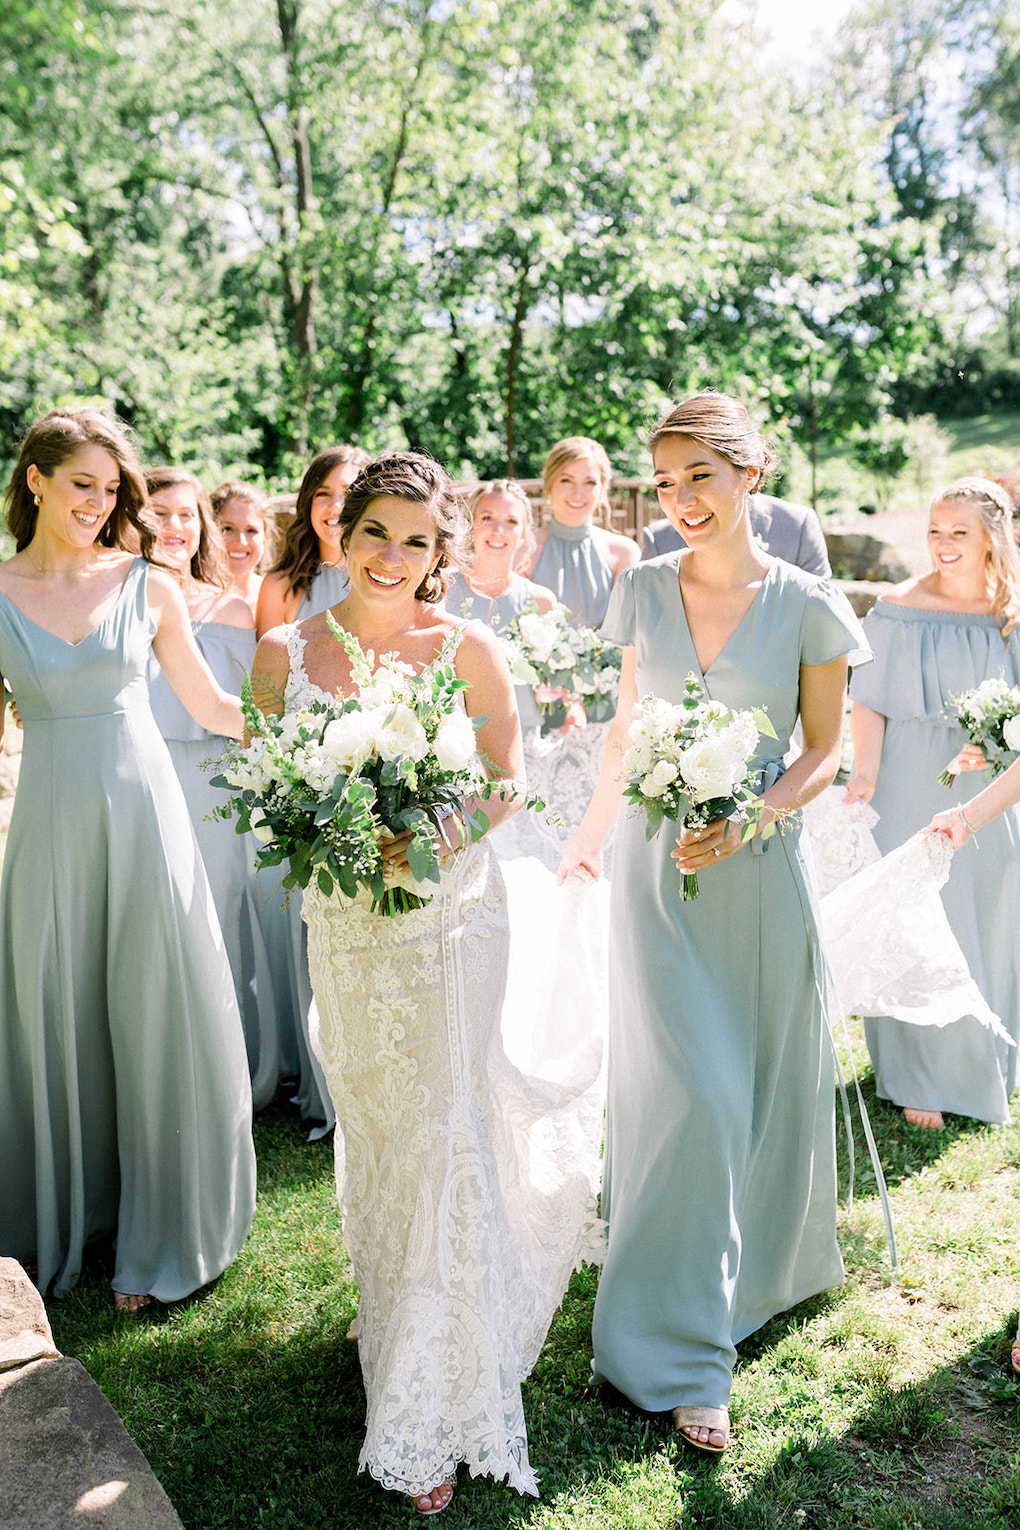 Fun bridal party photos: Pittsburgh Botanic Garden wedding planned by Exhale Events. See more wedding inspiration at exhale-events.com!